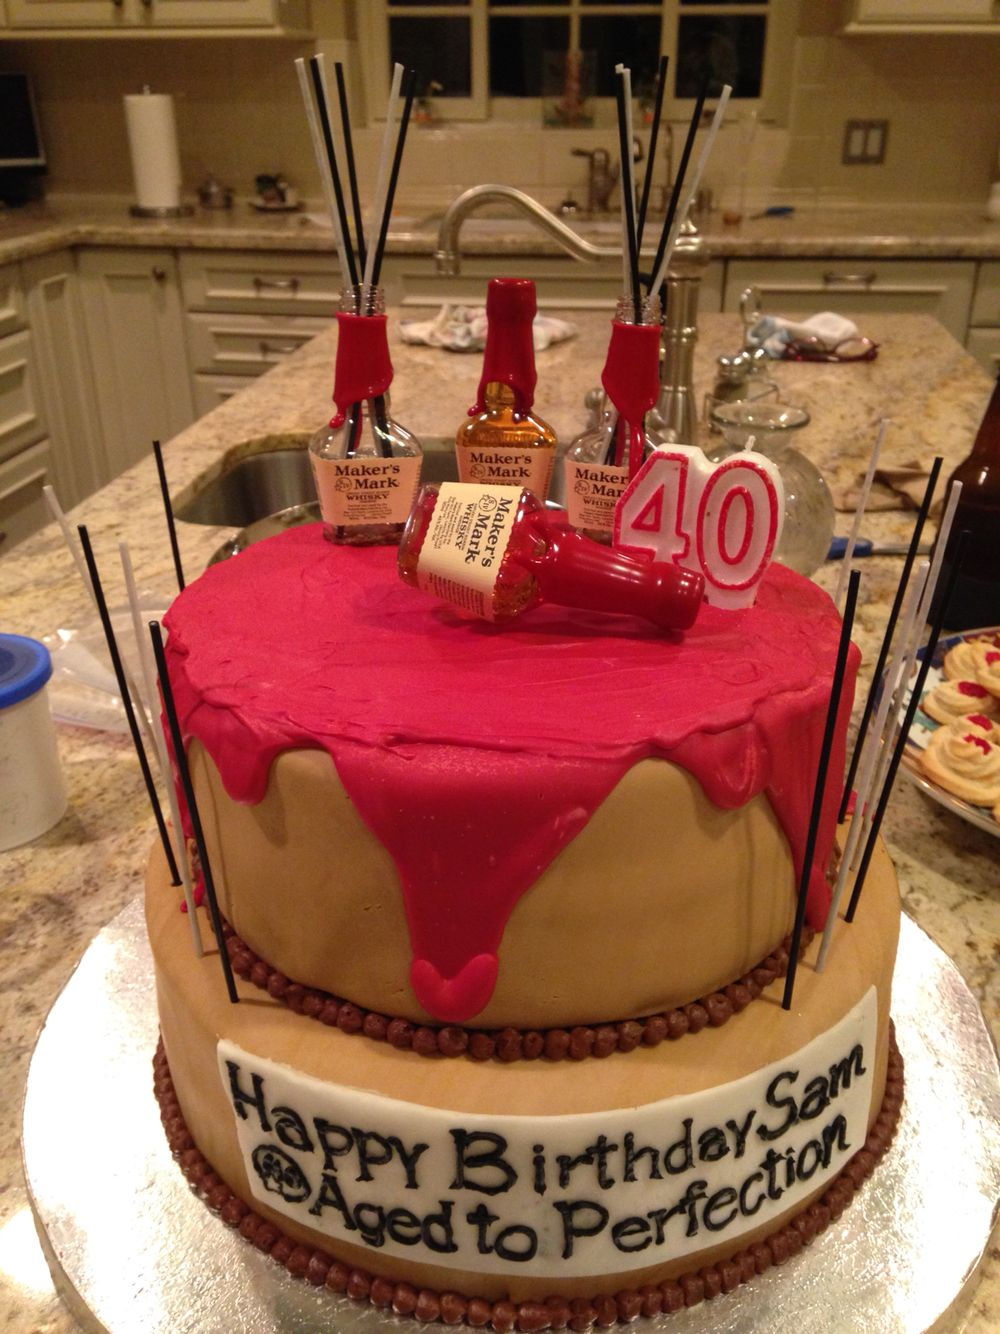 Makers Mark birthday cake | Busy Bee Cakes | Cake, Makers mark ...